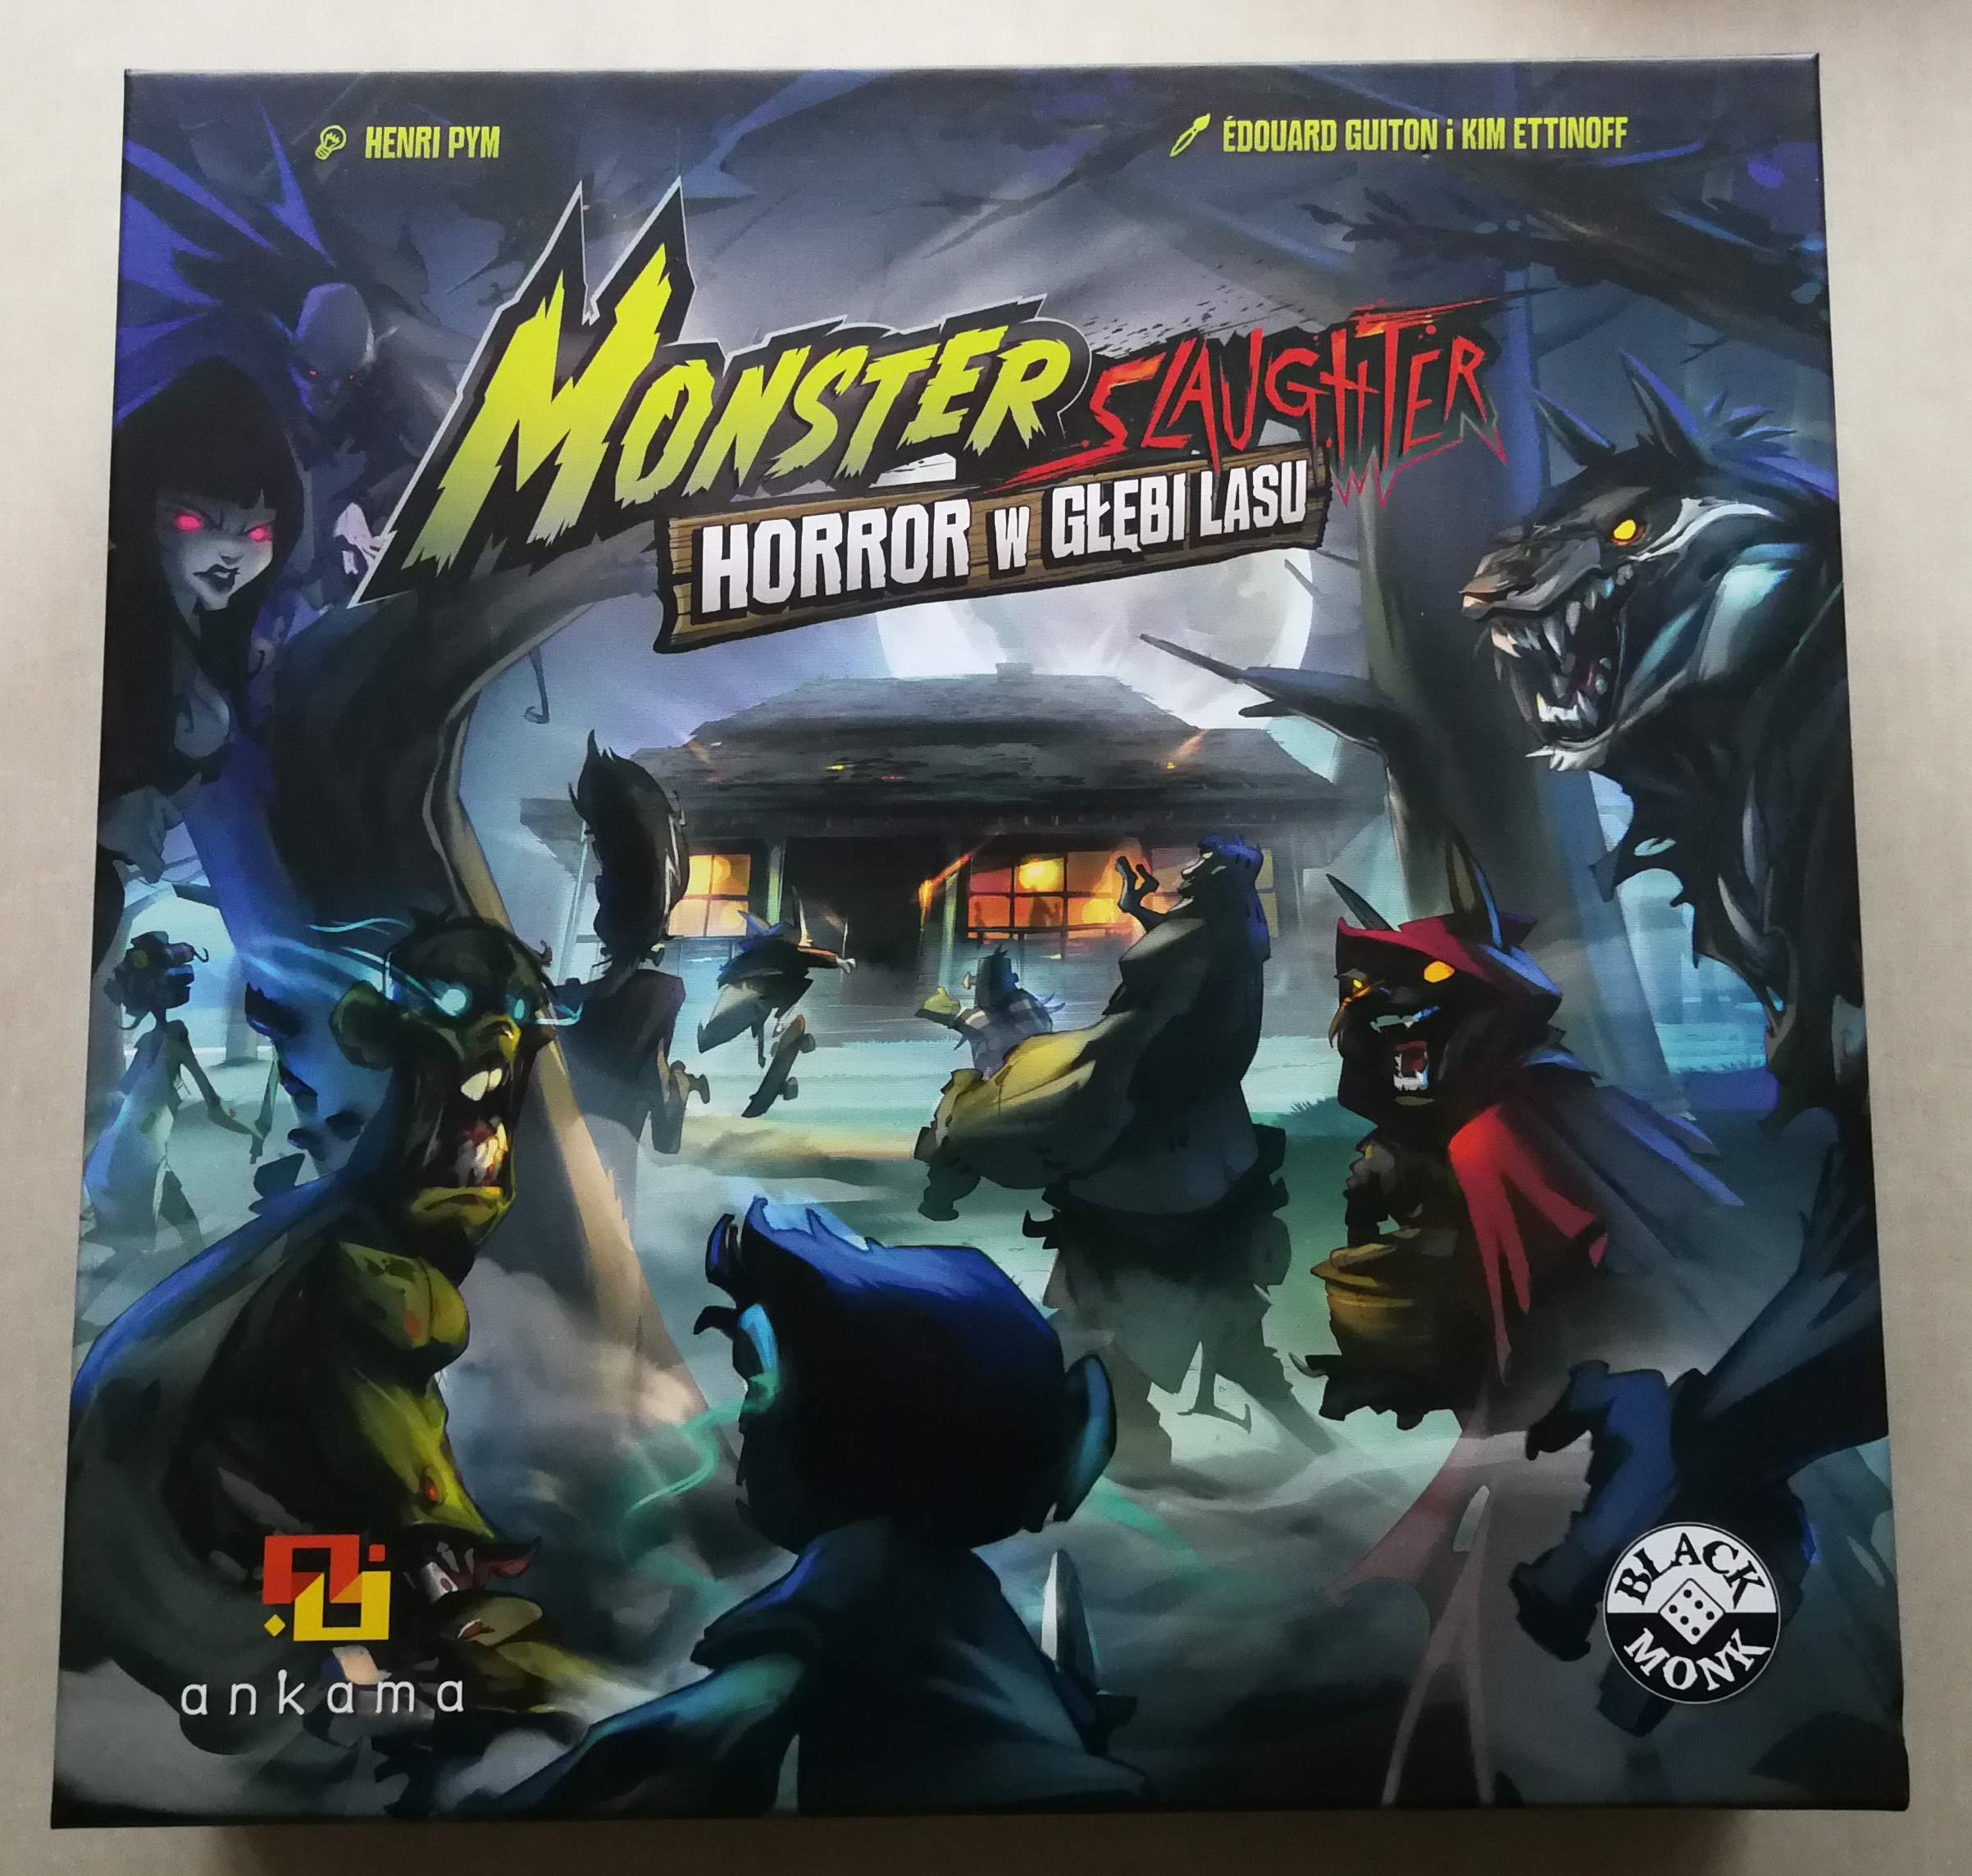 MONSTER SLAUGHTER: HORROR W GŁĘBI LASU